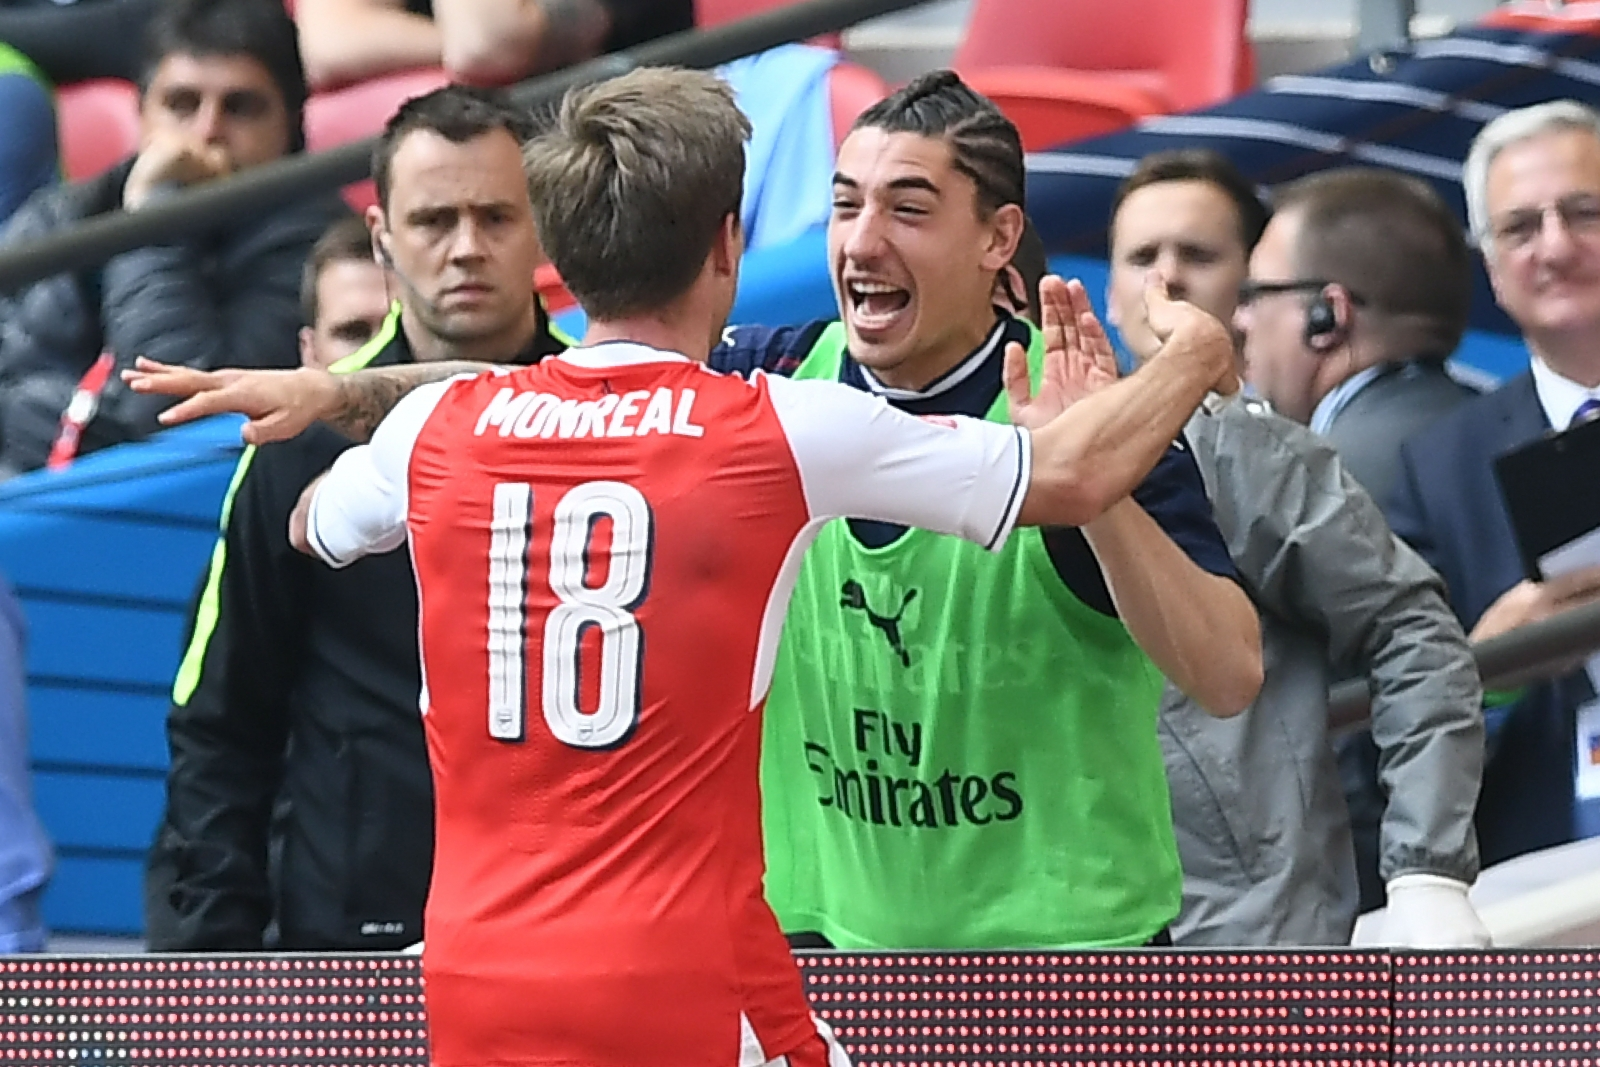 Arsenal knock out Man City to confront Chelsea in FA Cup final